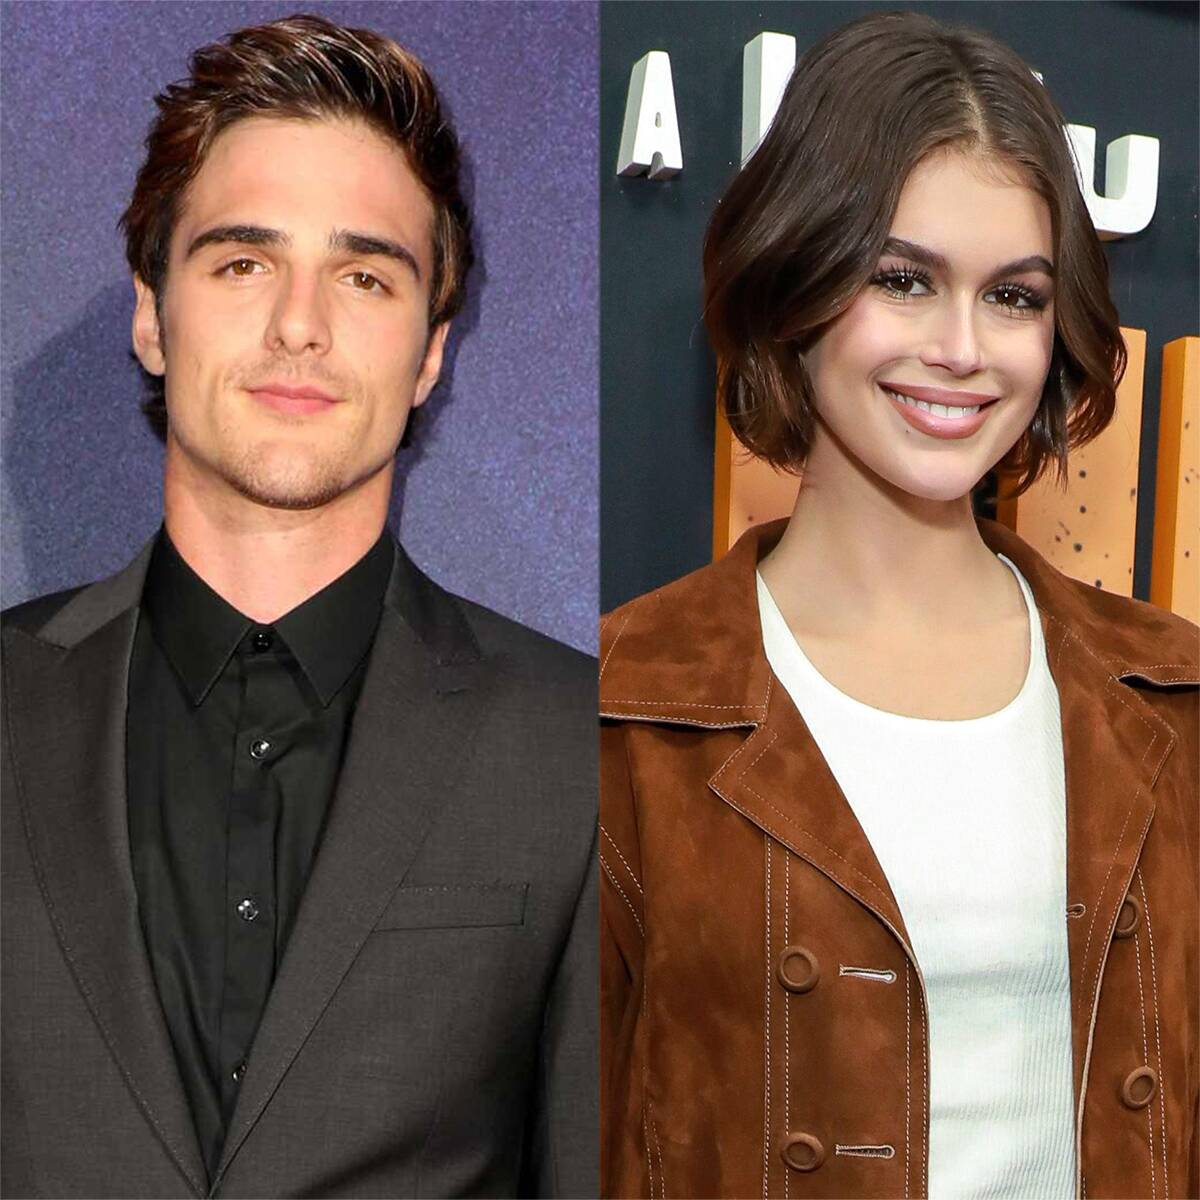 Newest Couple in Town!!- Kaia Gerber and Jacob Elordi